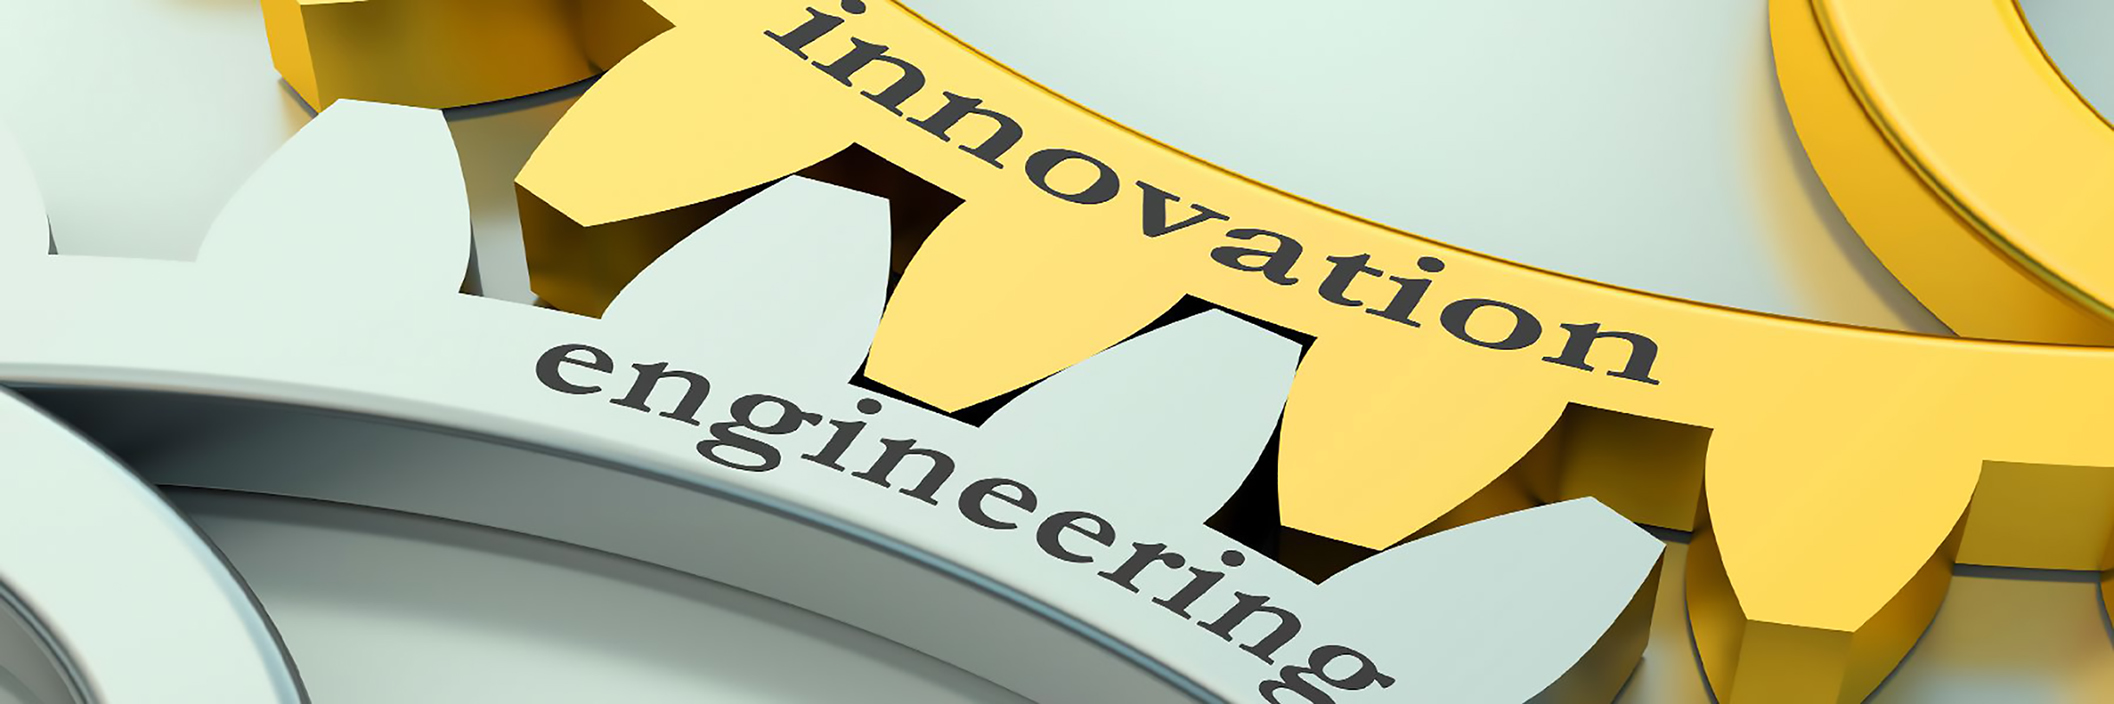 onox-innovation-engineering1